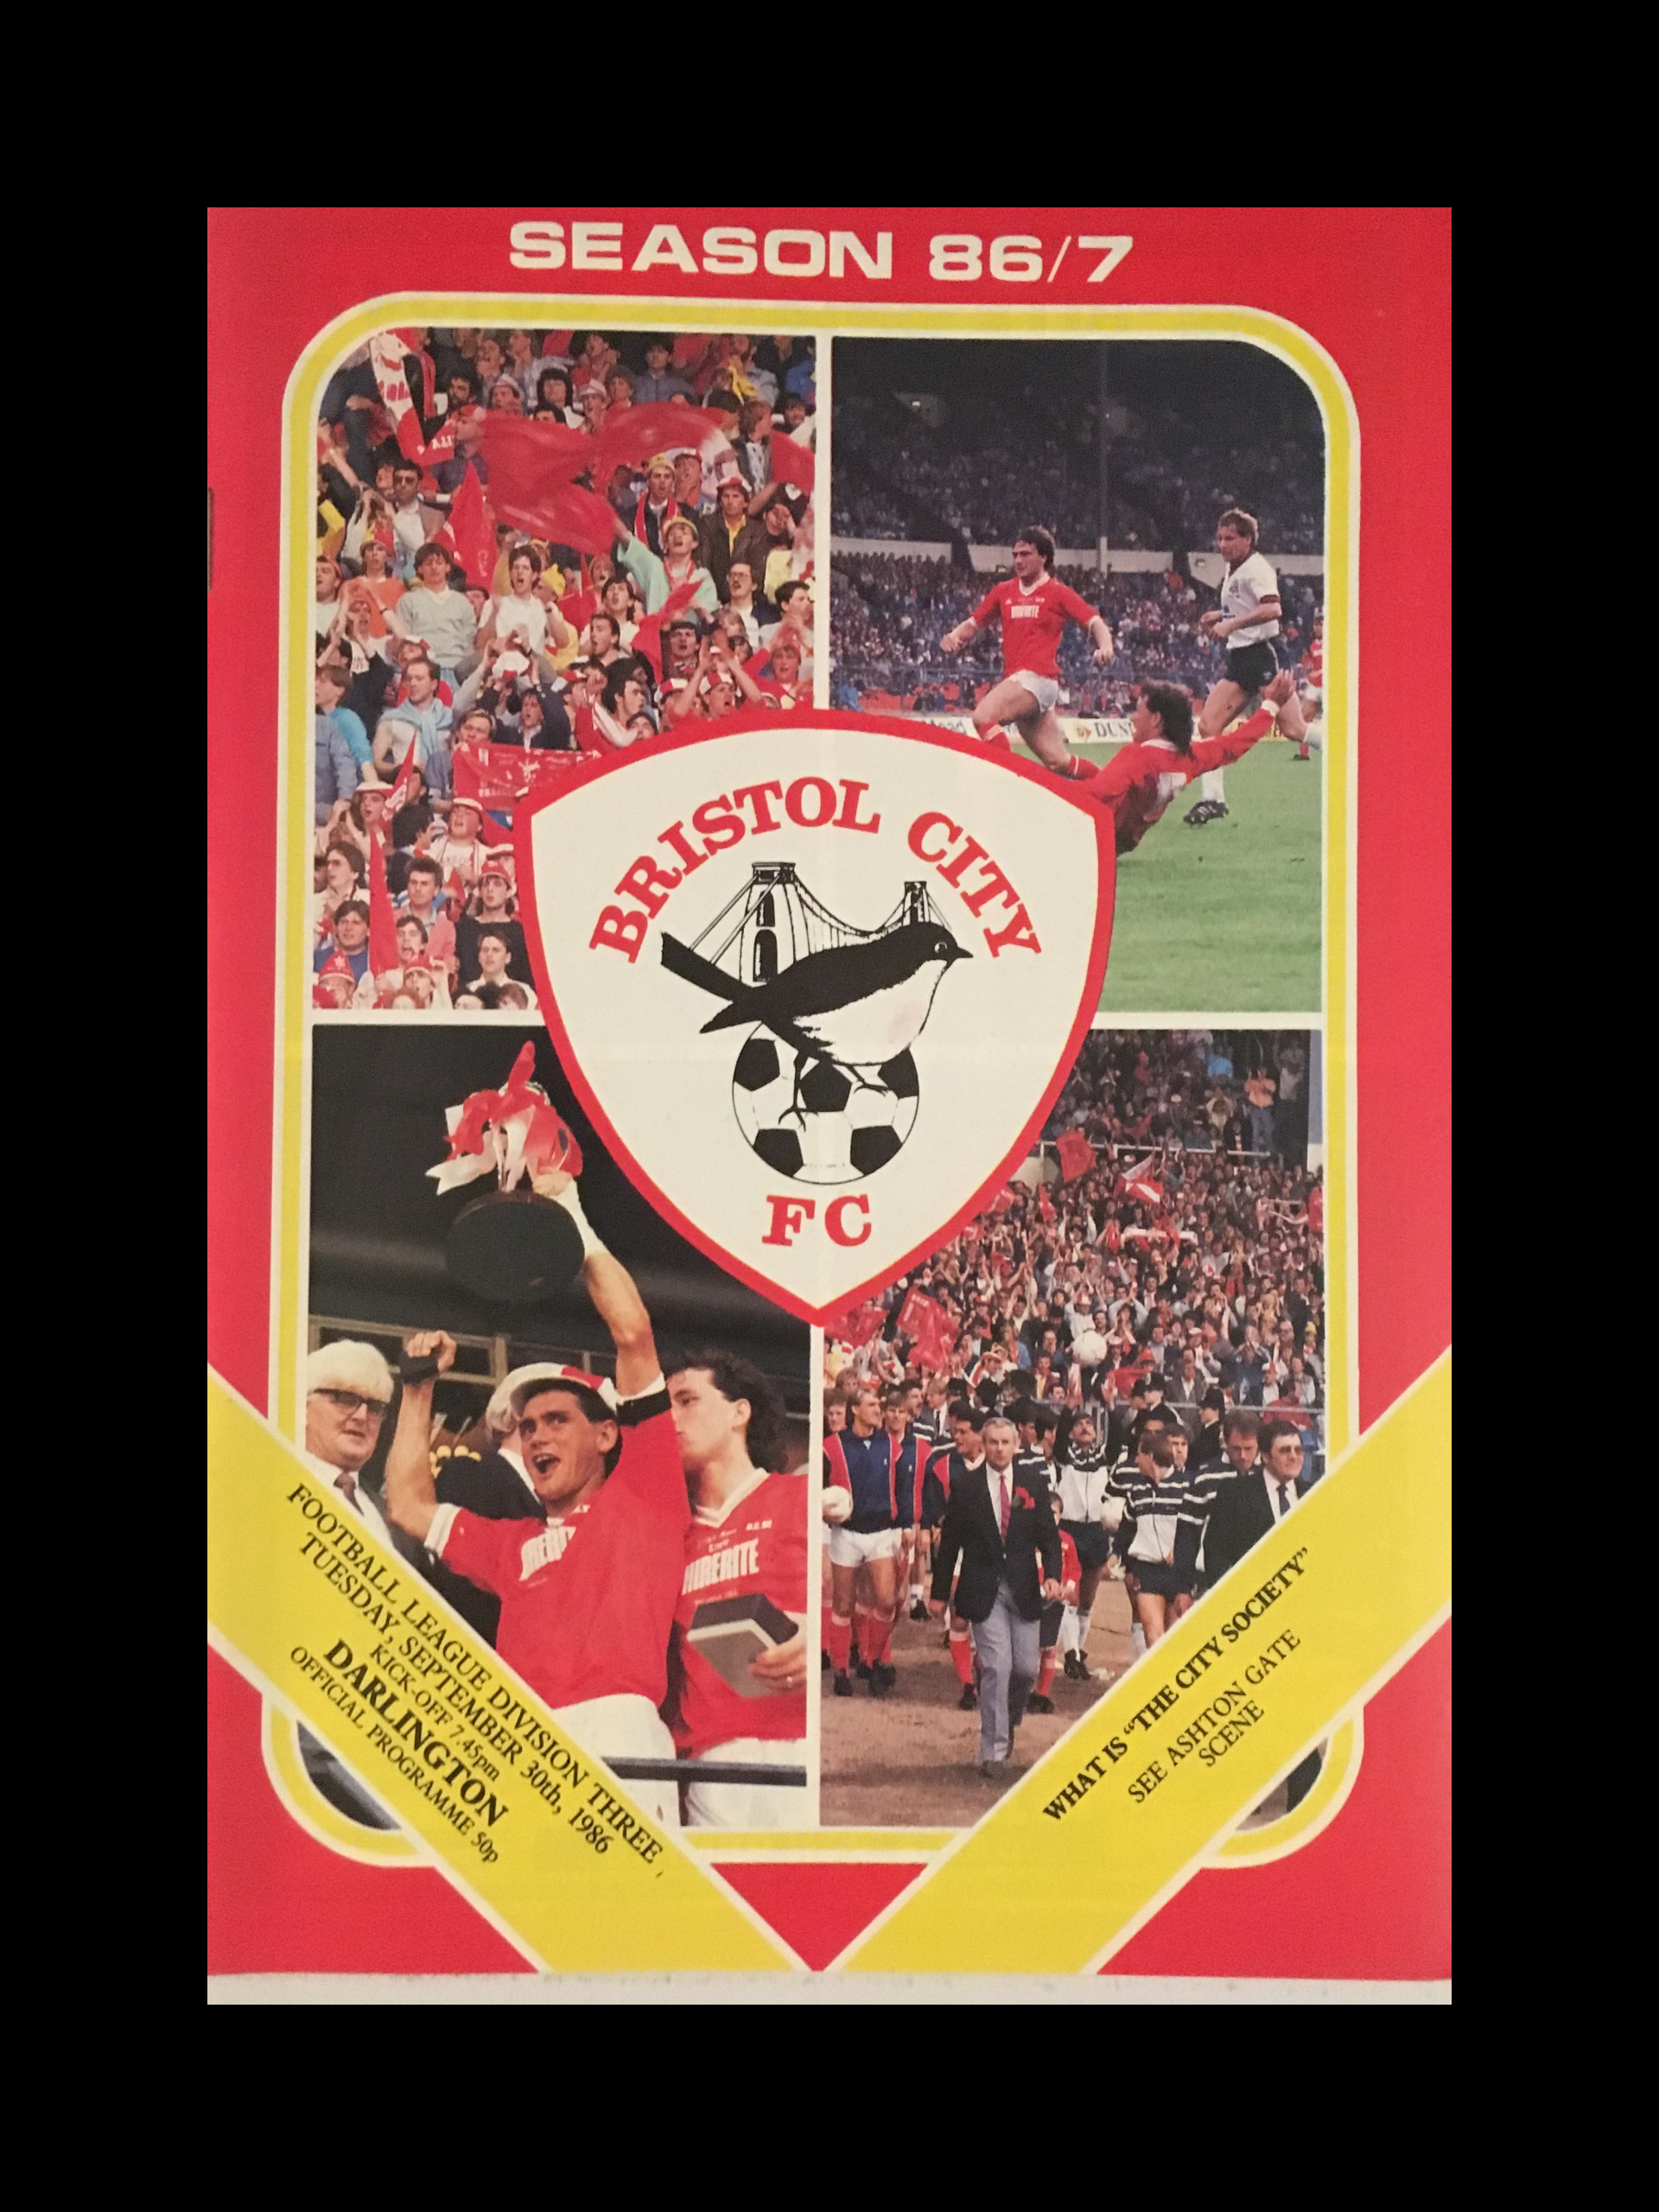 Bristol City v Darlington 30-09-86 Programme